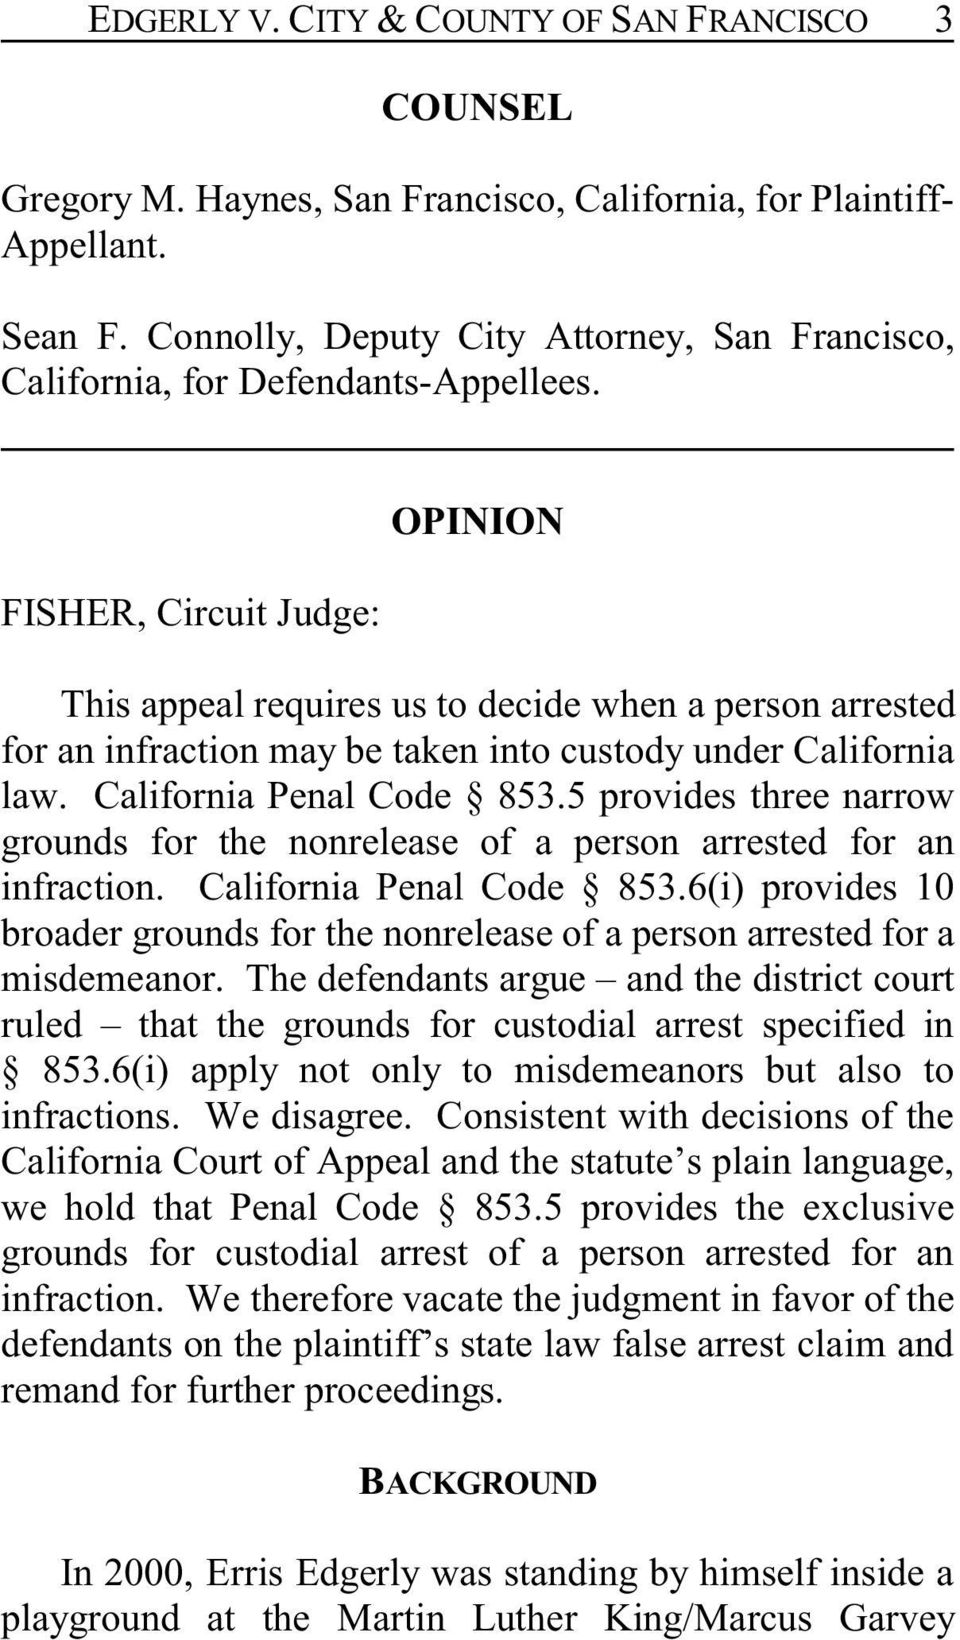 FISHER, Circuit Judge: OPINION This appeal requires us to decide when a person arrested for an infraction may be taken into custody under California law. California Penal Code 853.